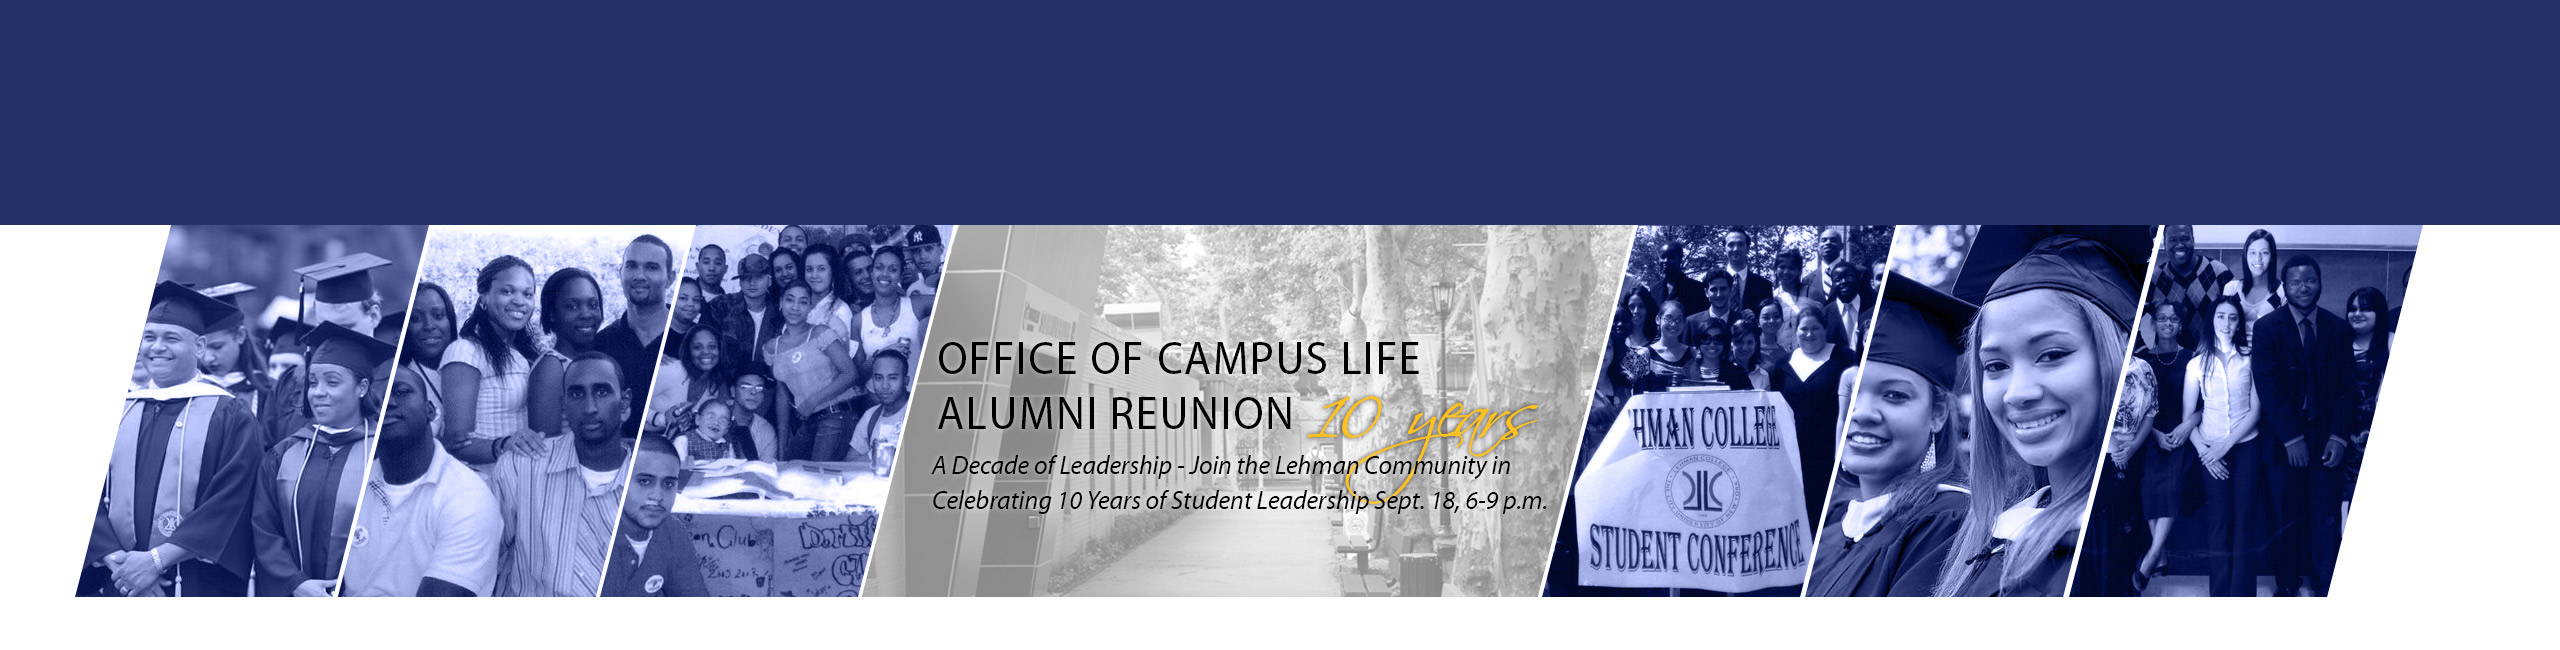 A Decade of Leadership - Join the Lehman Community in Celebrating  10 Years of Student Leadership Sept. 18, 6-9 p.m.